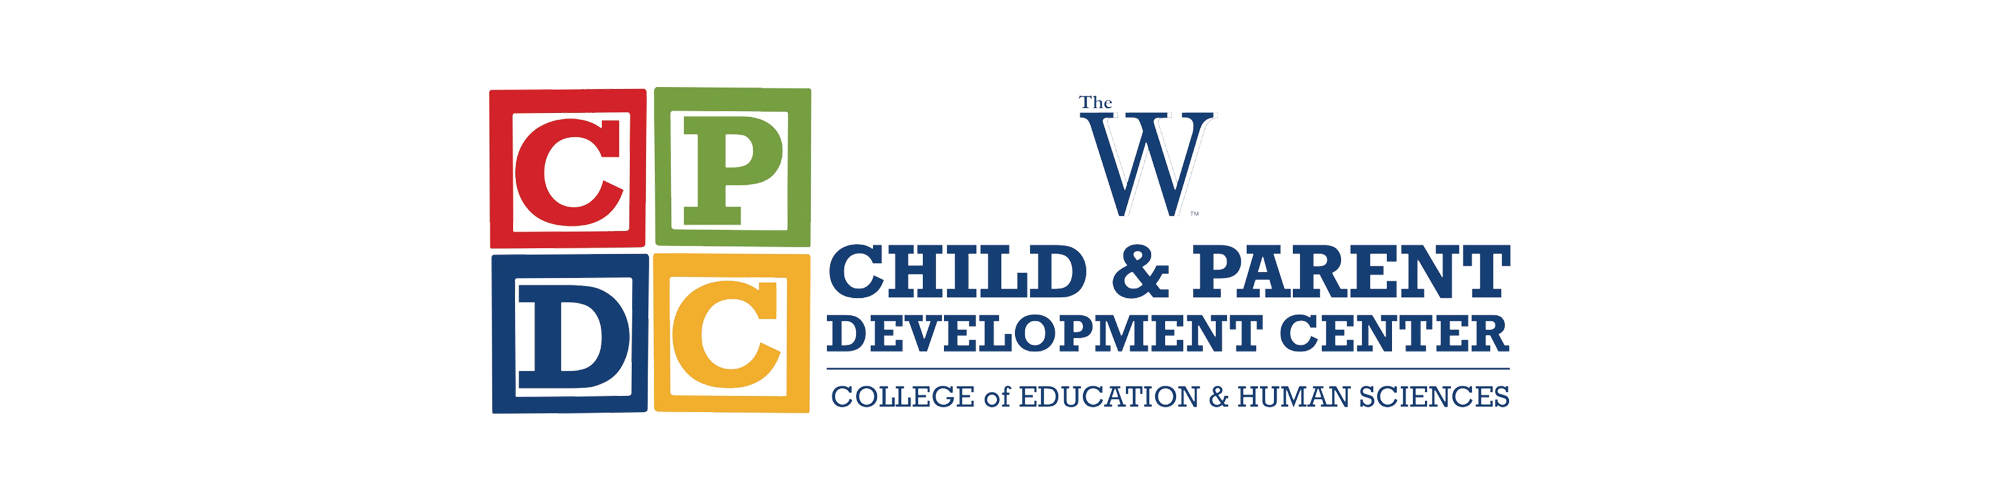 Child & Parent Development Center: College of Education & Human Sciences